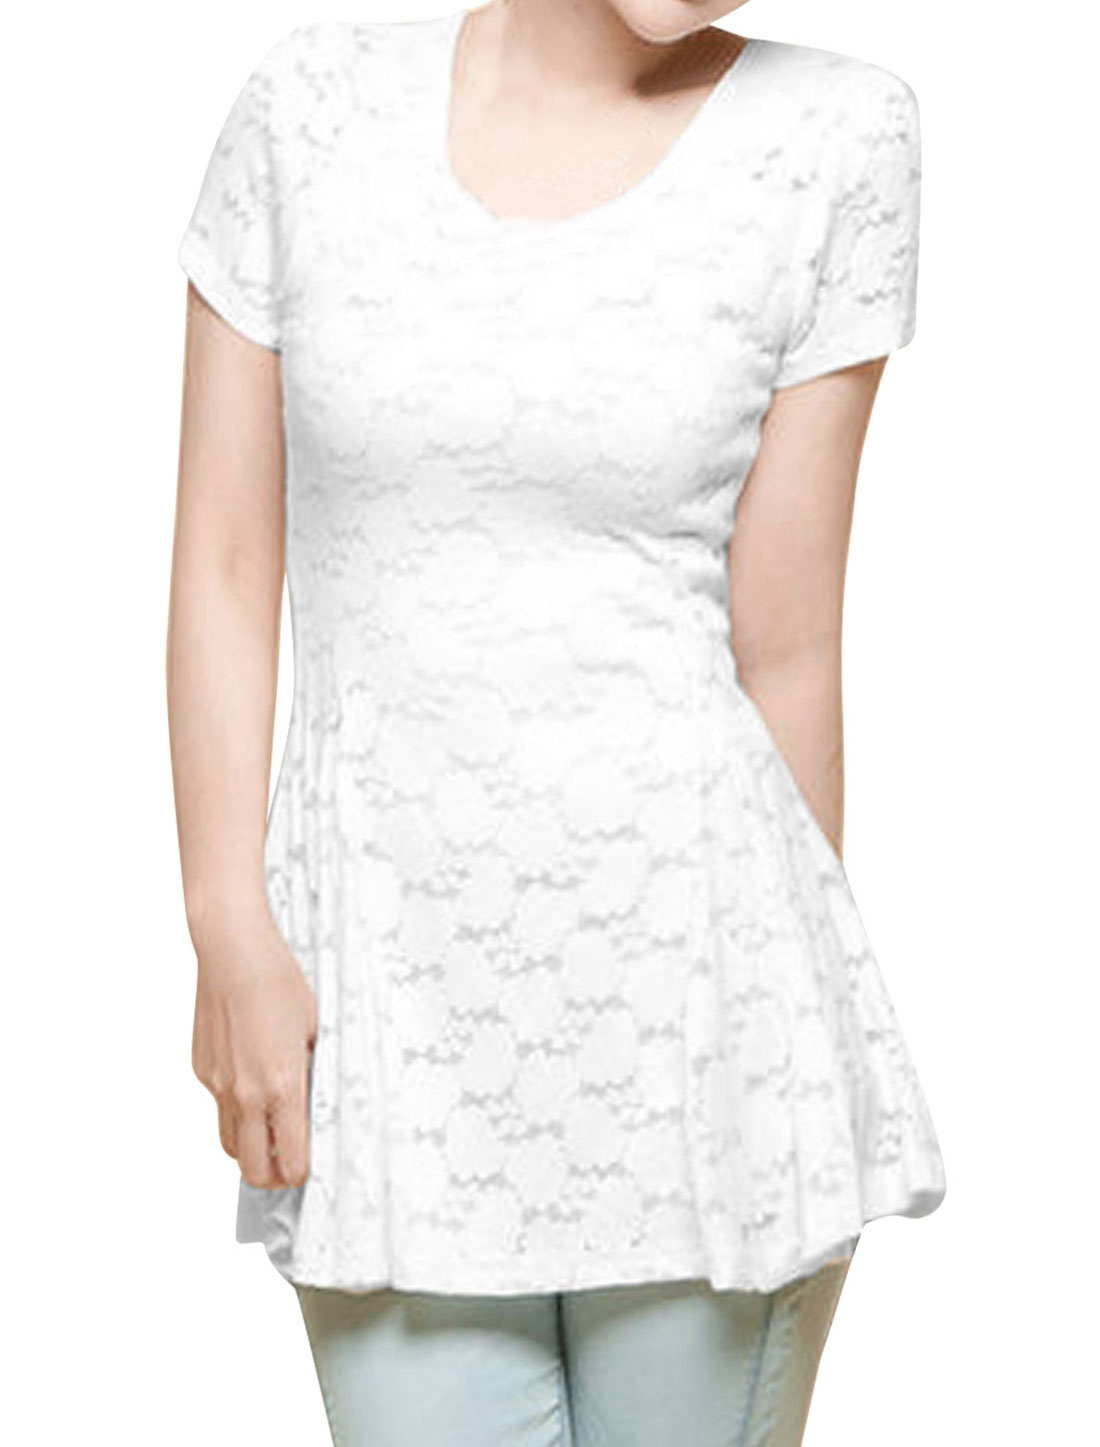 Lady Chic Round Neck Short Sleeve Slim Fit Lace Top Blouse White XS